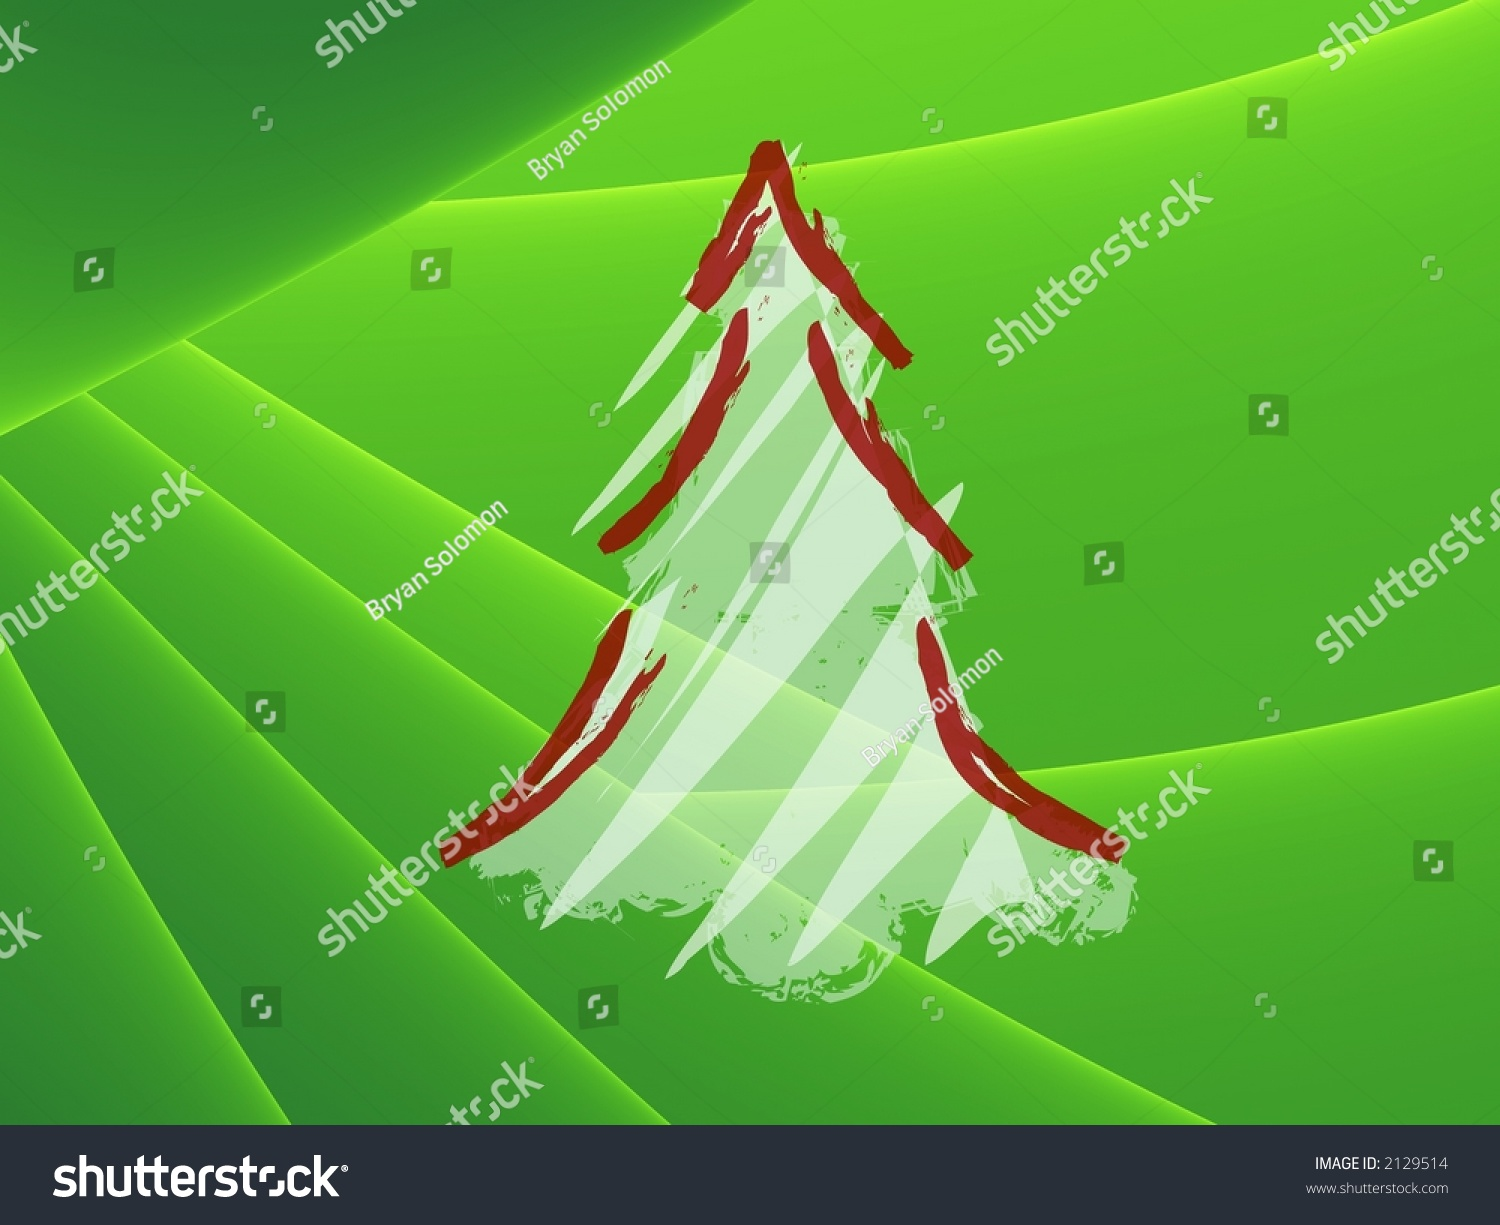 Christmas Tree Pictures High Resolution : Simple christmas tree high resolution illustration